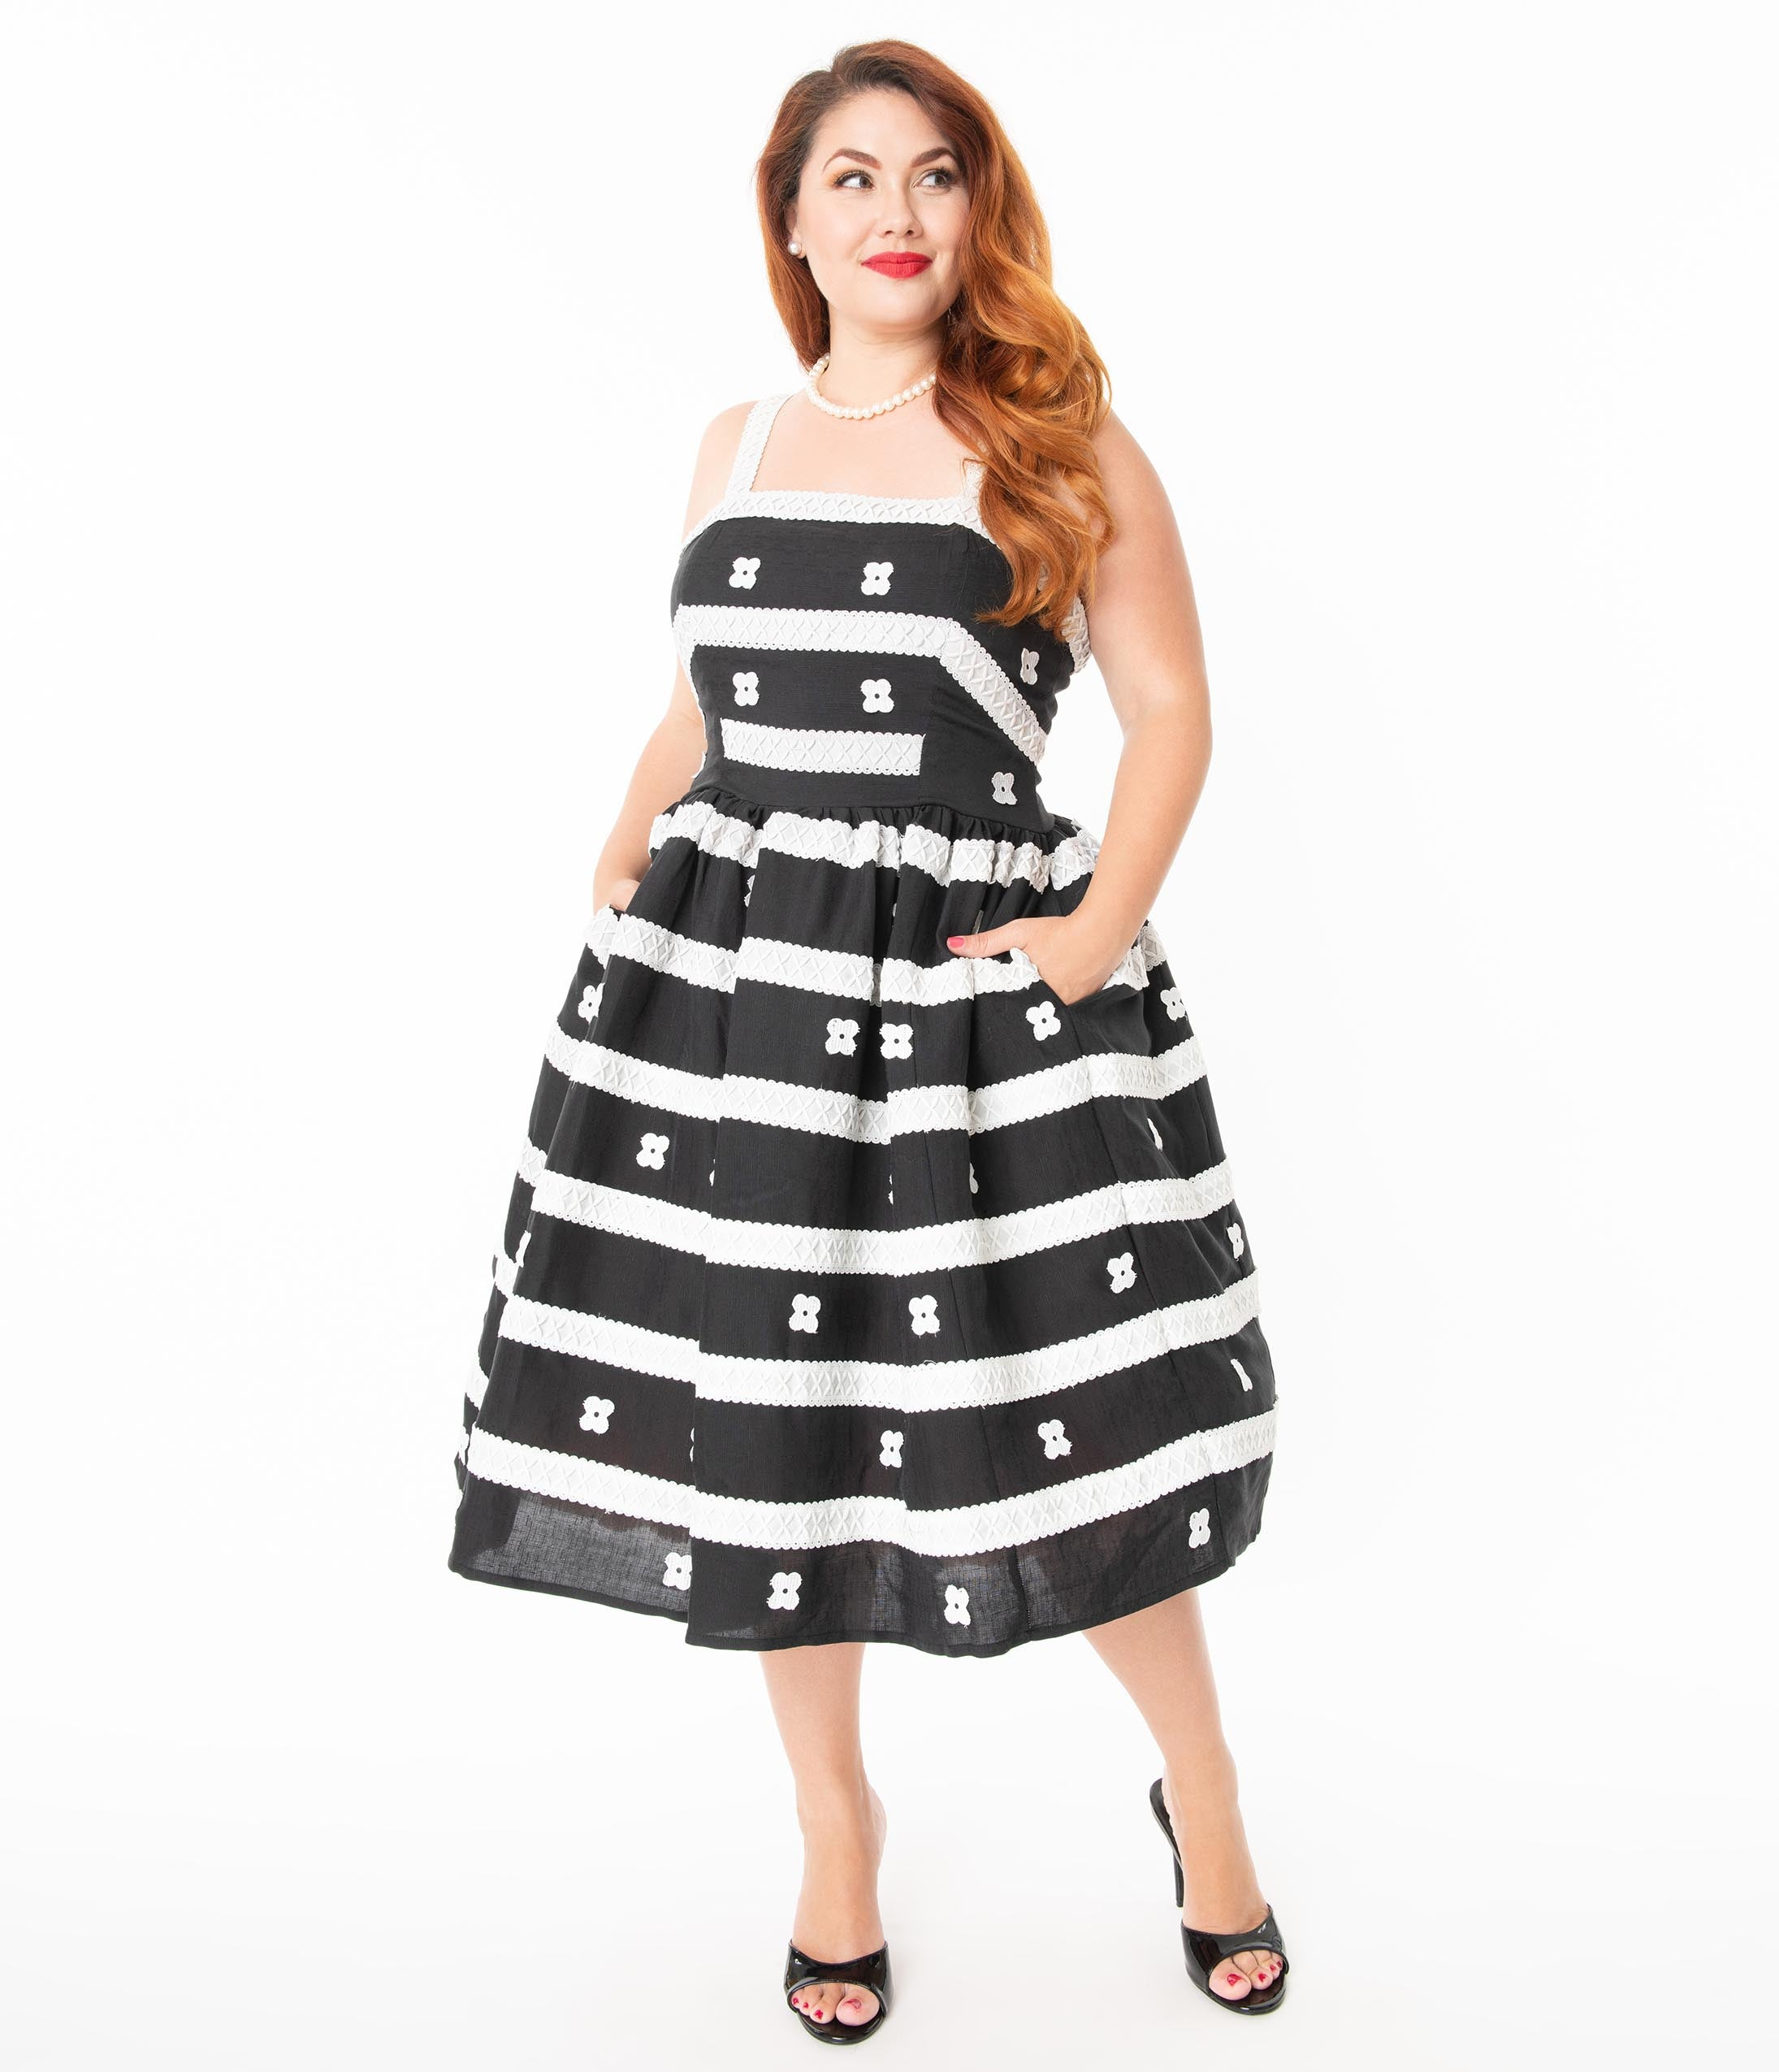 1950s Plus Size Dresses, Swing Dresses Barbie X Unique Vintage Plus Size Black  White Busy Morning Sundress $168.00 AT vintagedancer.com